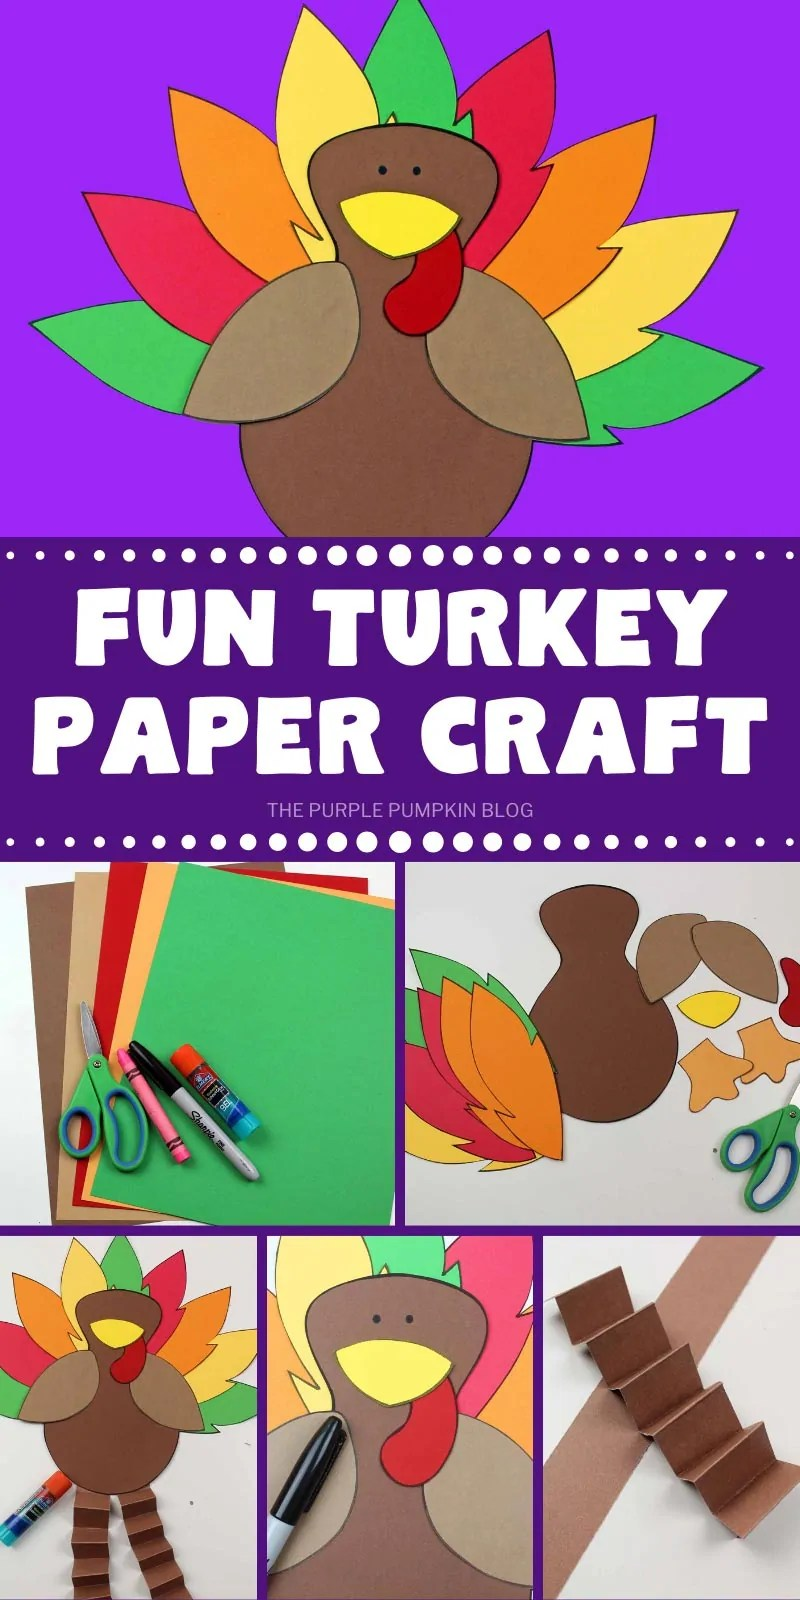 How to make a fun paper turkey with step by step photos.